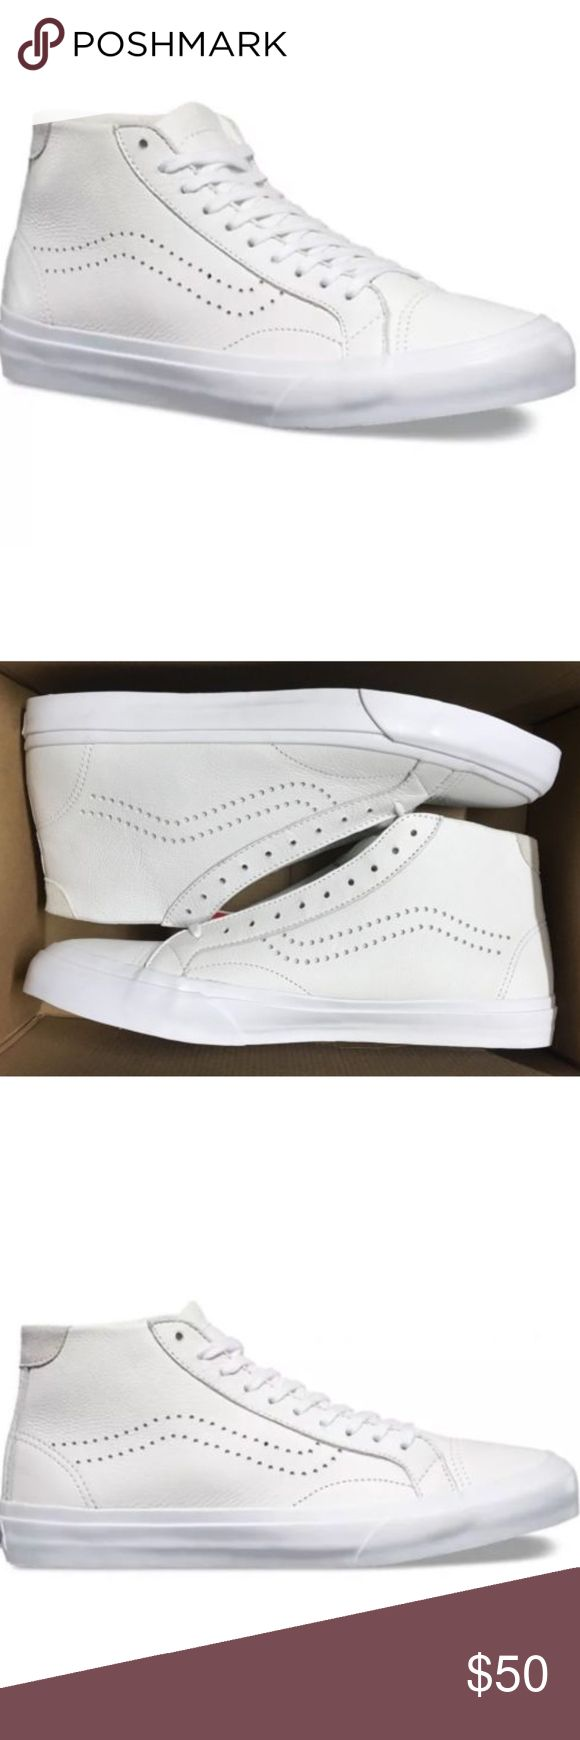 Vans Court Mid DX Leather White Classic Skate Shoe Vans Court Mid DX Leather White Classic Skate Shoes  Size Men 13 Brand new in box Vans Shoes Athletic Shoes